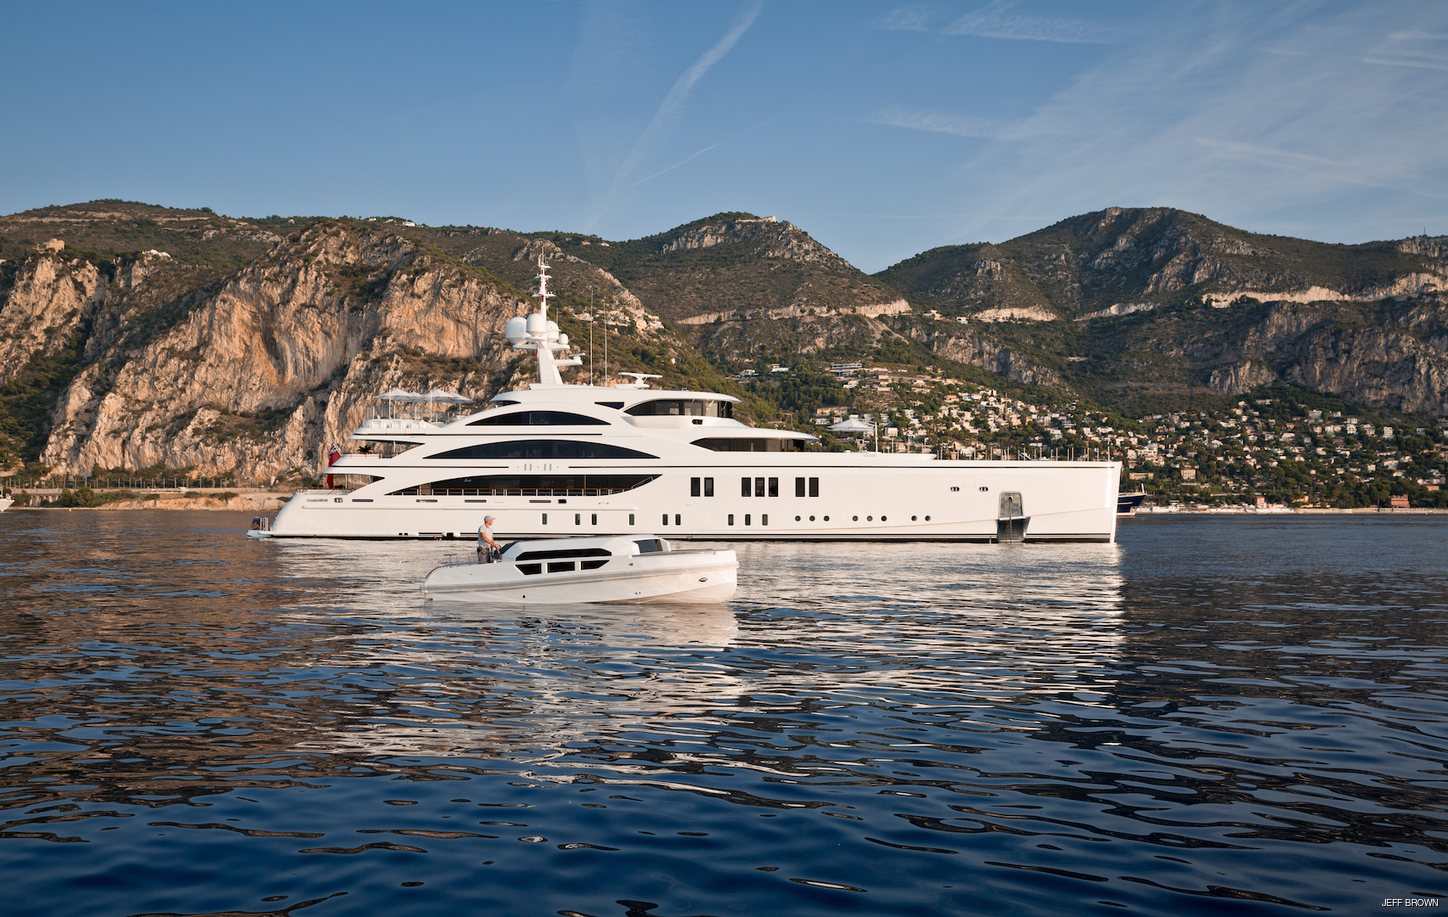 luxury yacht 11/11 cruises on a private yacht charter